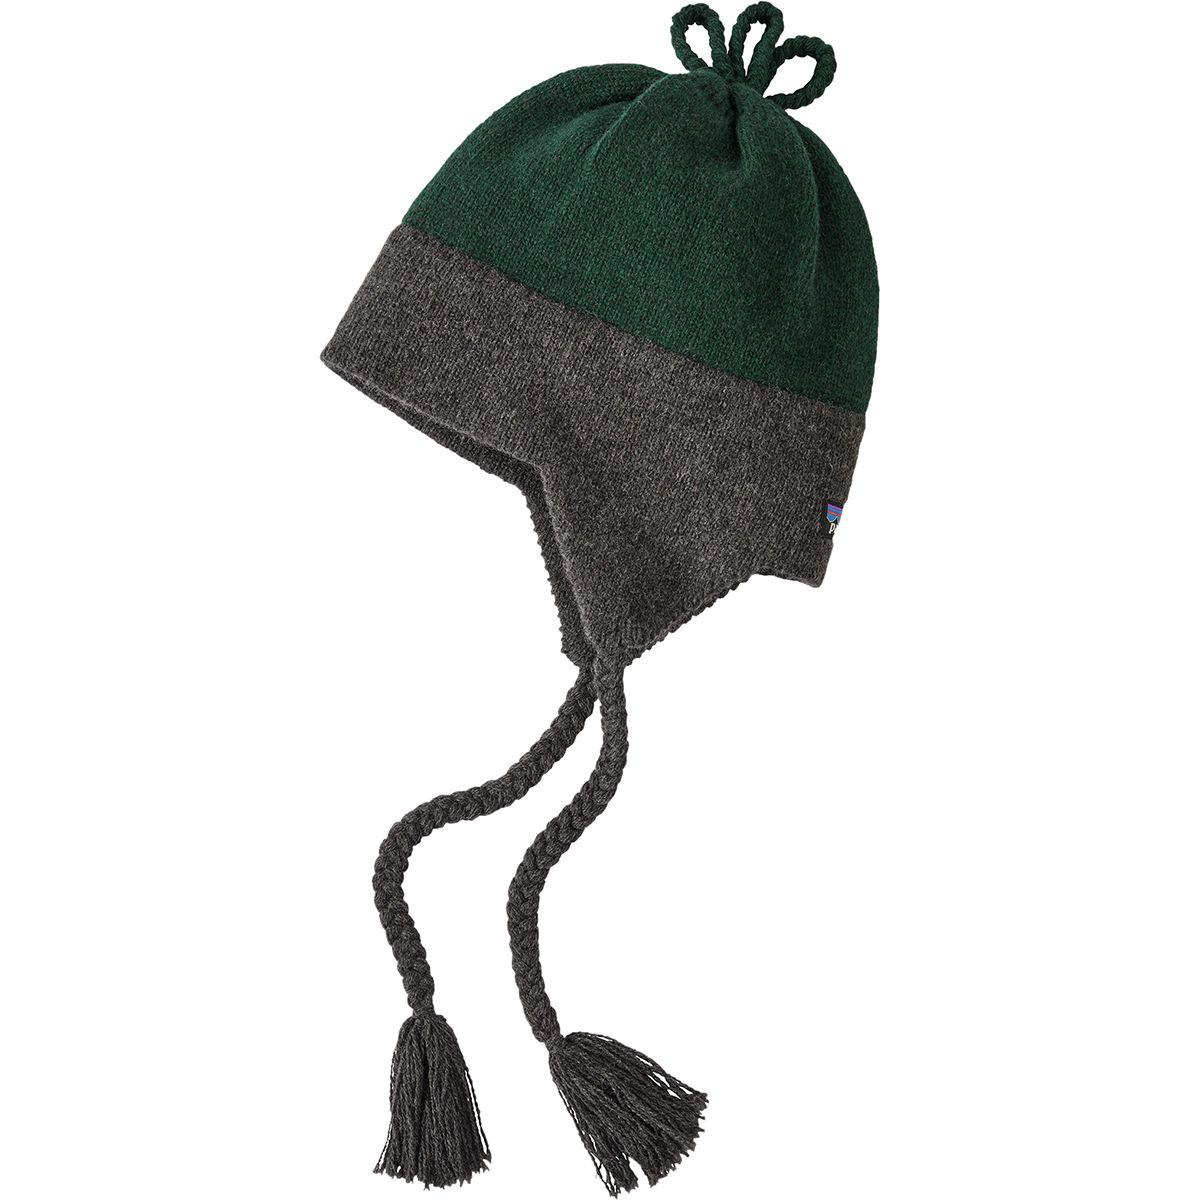 Lyst - Patagonia Ear Flap Hat in Green for Men 389a4f508dc8